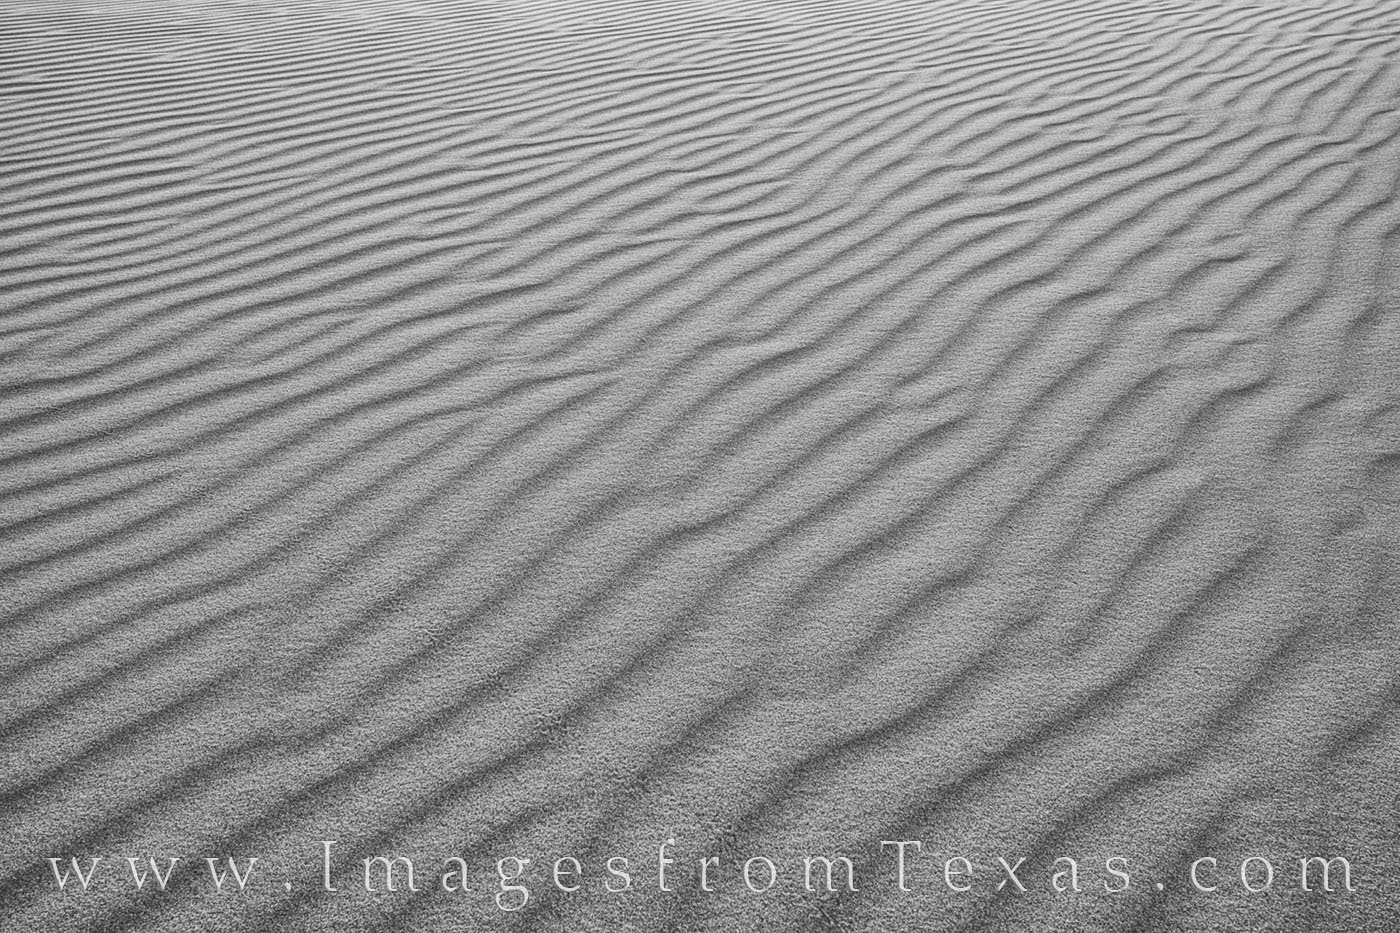 sand dunes, black and white, sandhills, sandhills state park, texas parks, sand, monahans, I-20, wind, photo